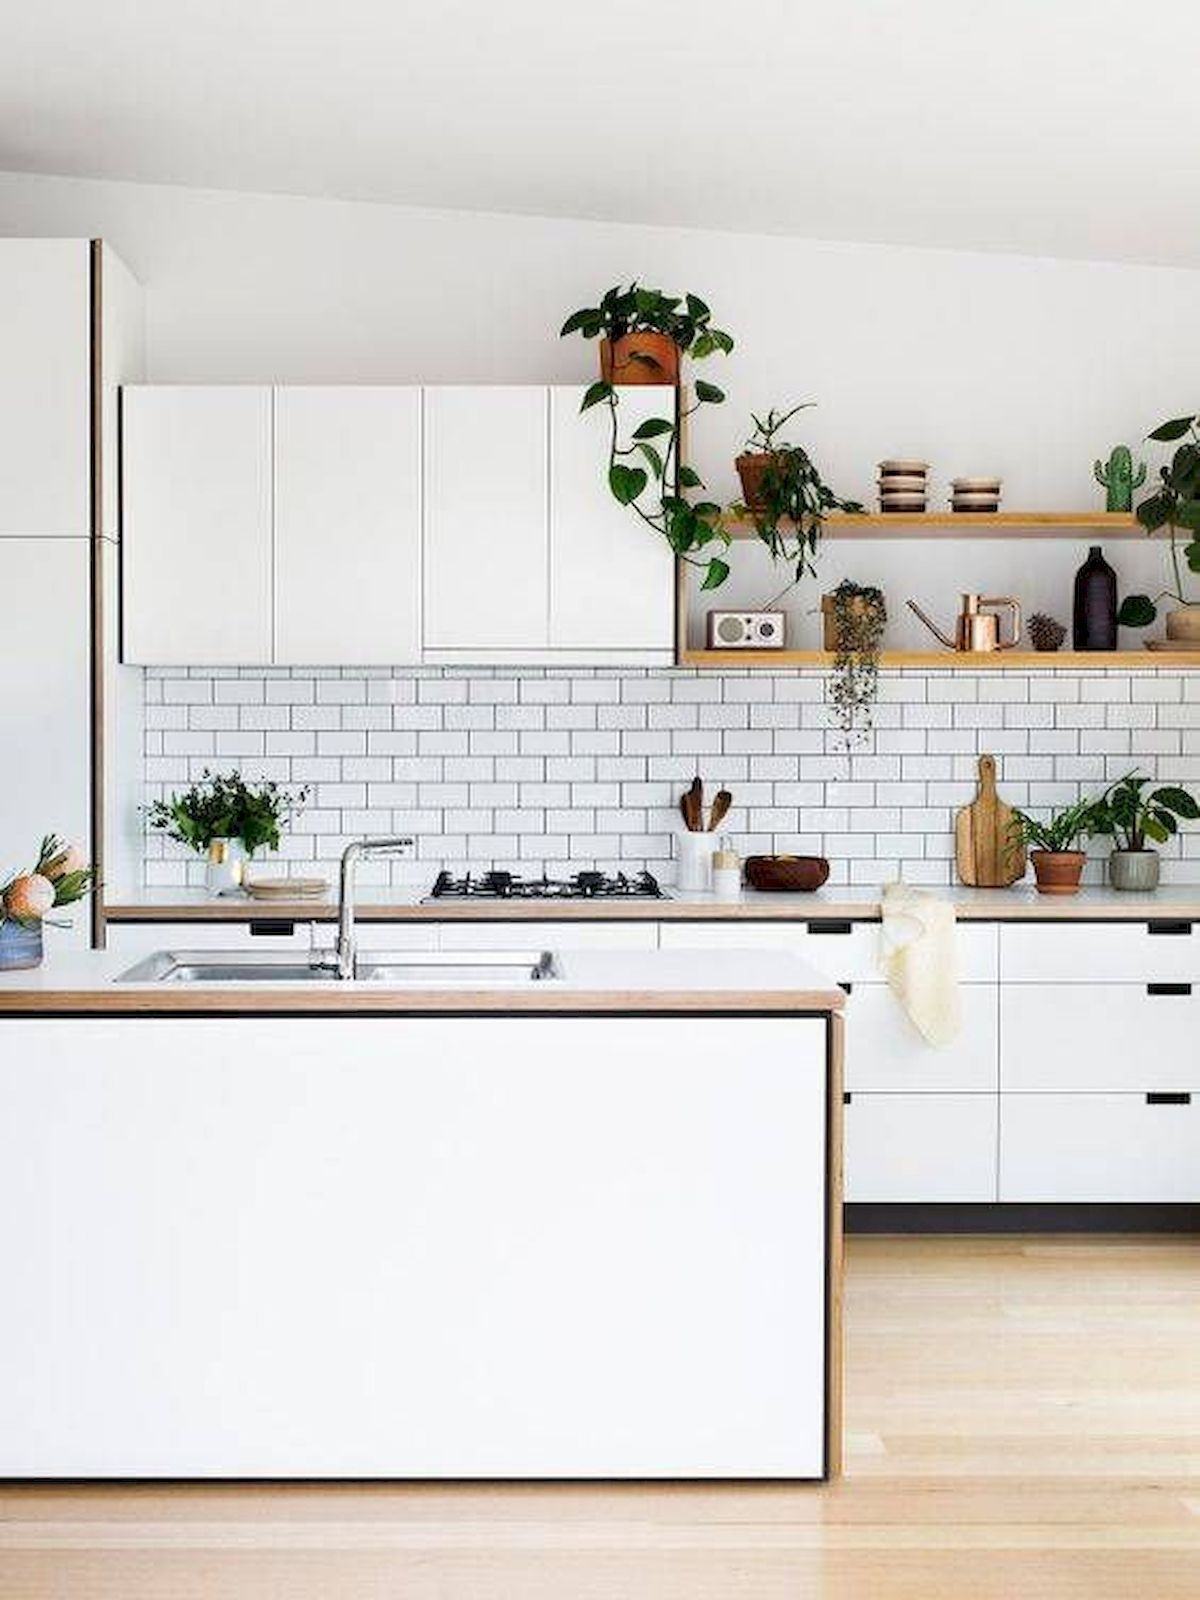 Gallery Photos Kitchen Ideas That Work For Rooms Of All Sizes Yellowraises Kitchen Design Kitchen Design Small Modern Kitchen Design